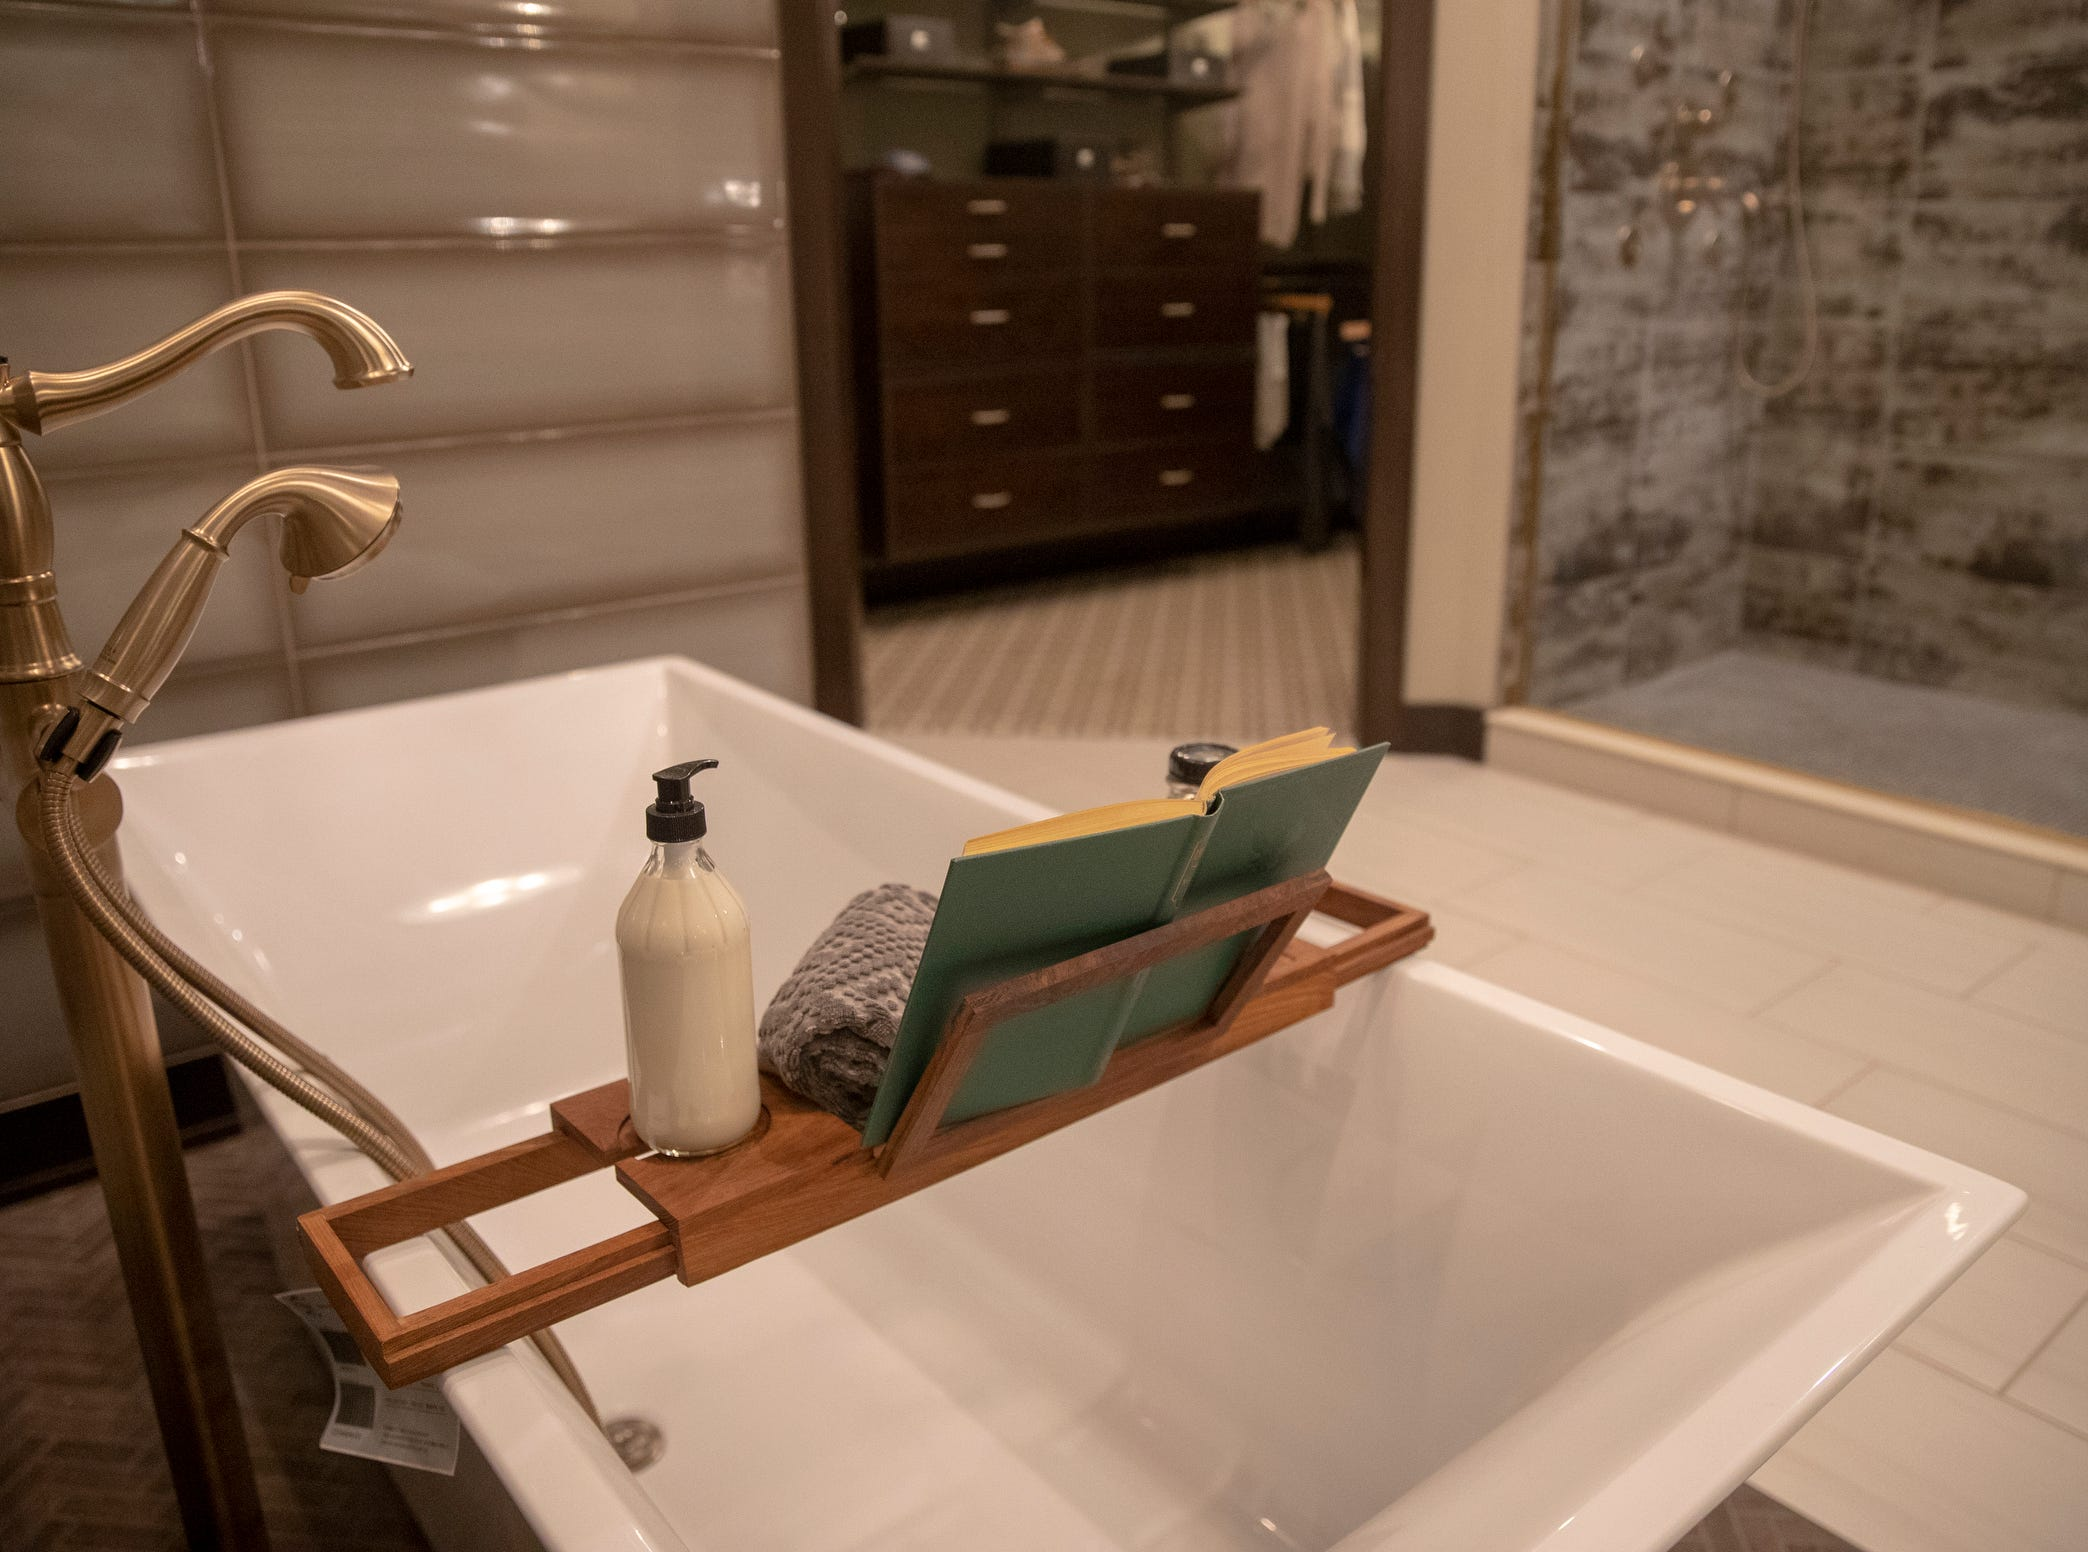 A free-standing tub inside the Centerpiece Home at the Indianapolis Home Show, Indiana State Fairgrounds, Indianapolis, Thursday, Jan. 17, 2018. The home, which is open through January 27 was built by Davis Homes, with an interior designed by Shelby Upchurch of Luxe Home Interiors, and landscaping by Calvin Landscape.